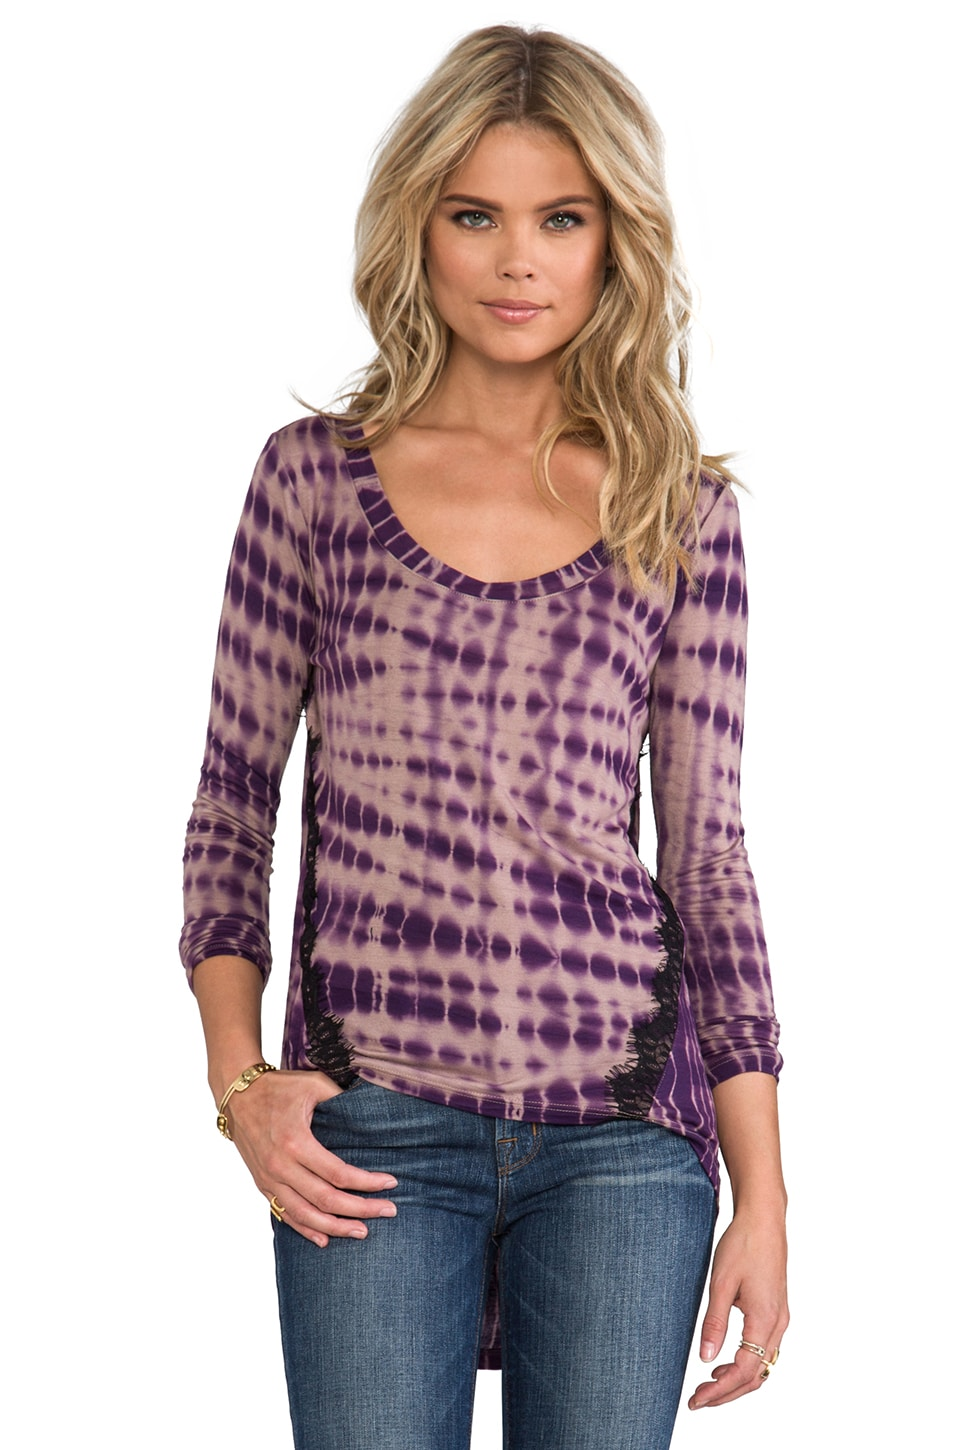 WOODLEIGH Charlene Top in Eggplant Alligator